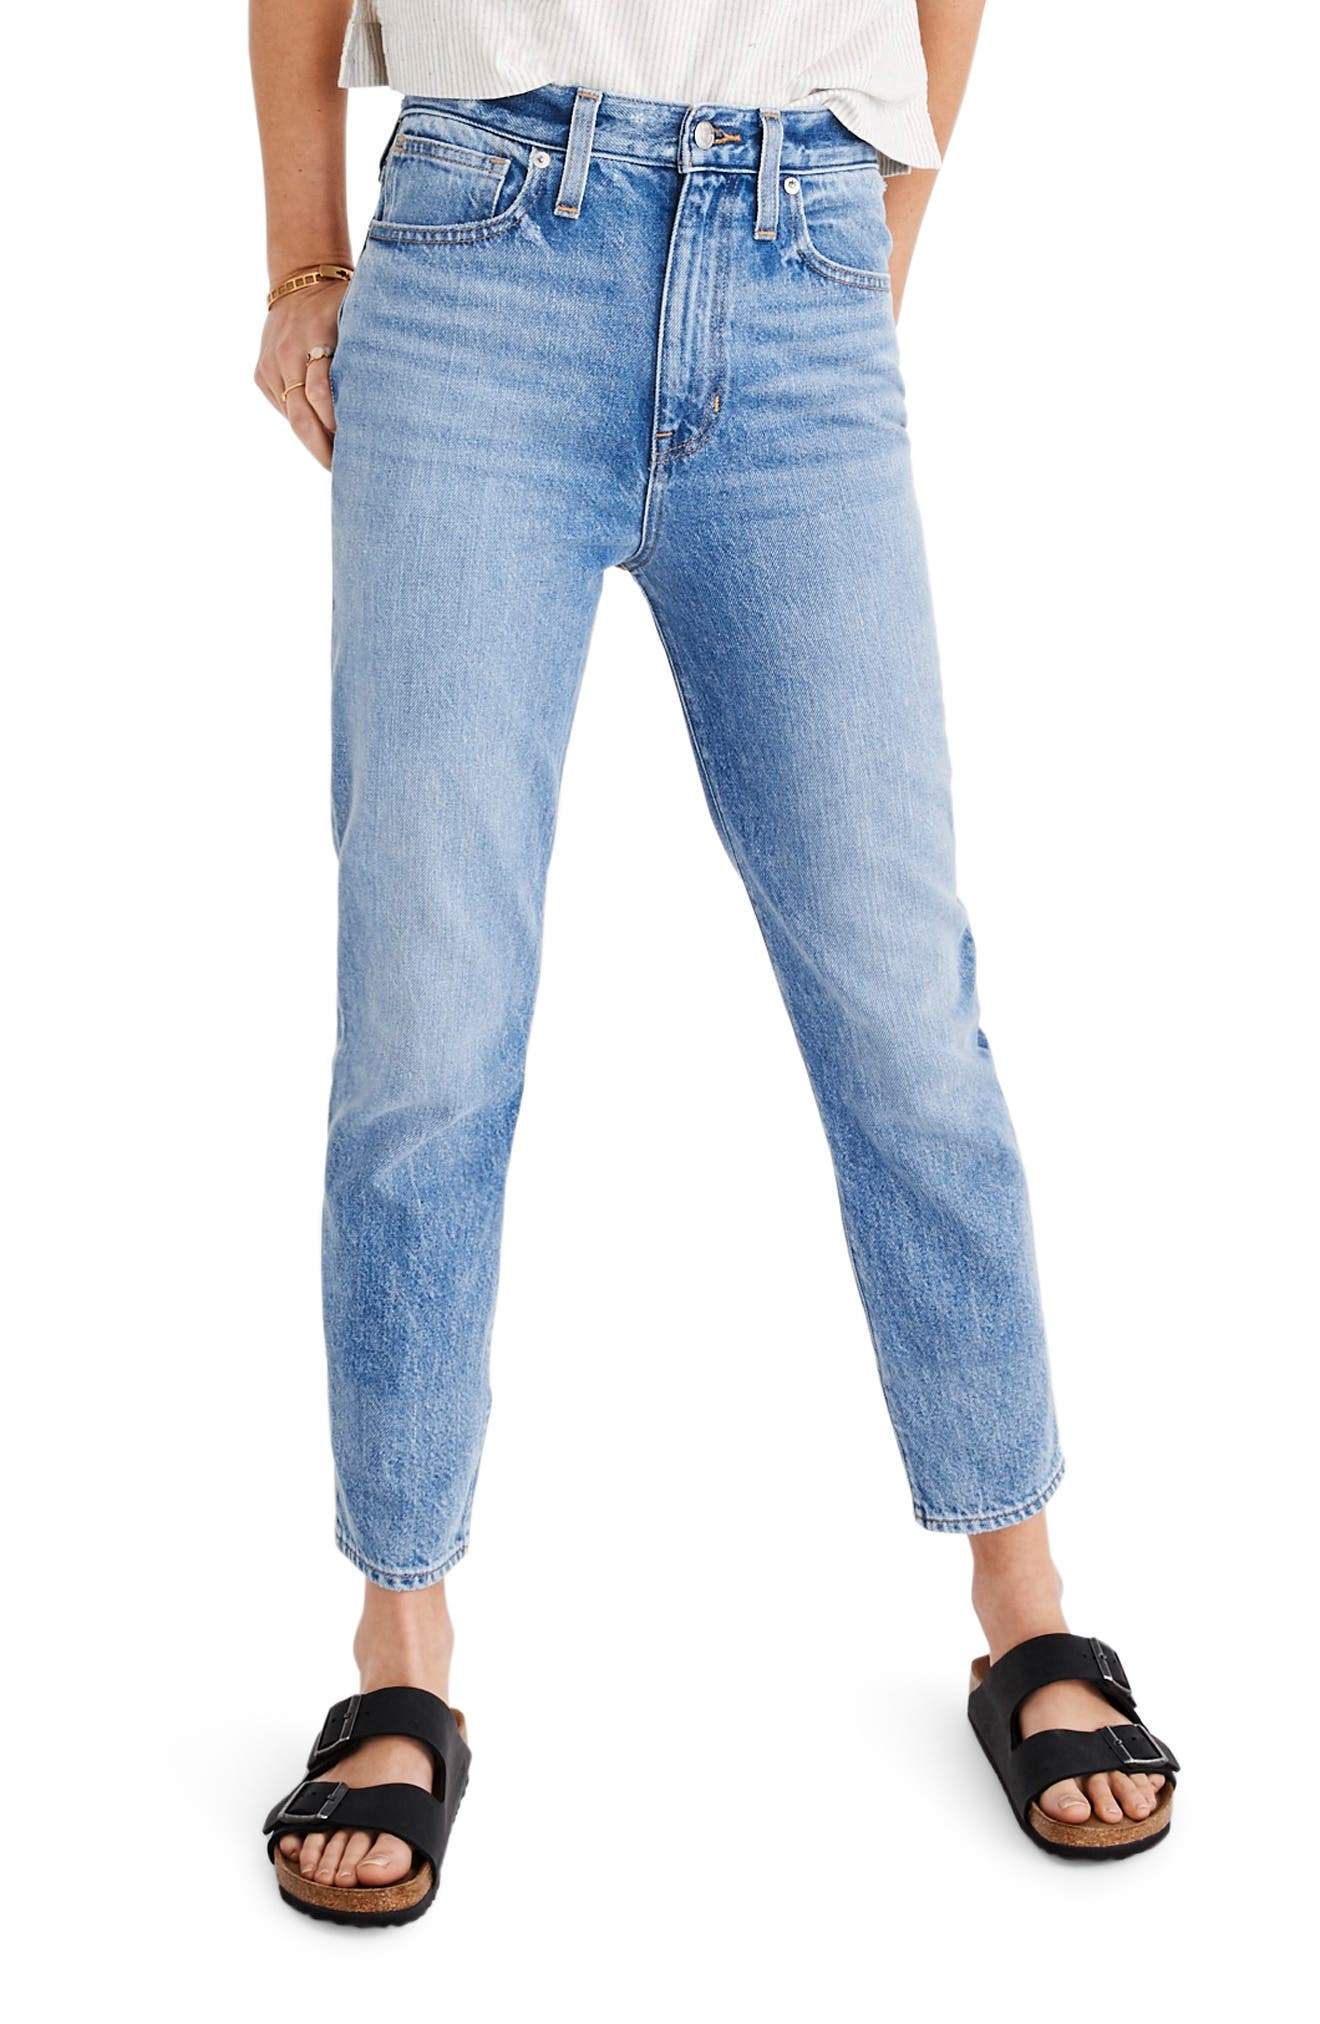 Madewell The Momjean High Waist Jeans (Melva)